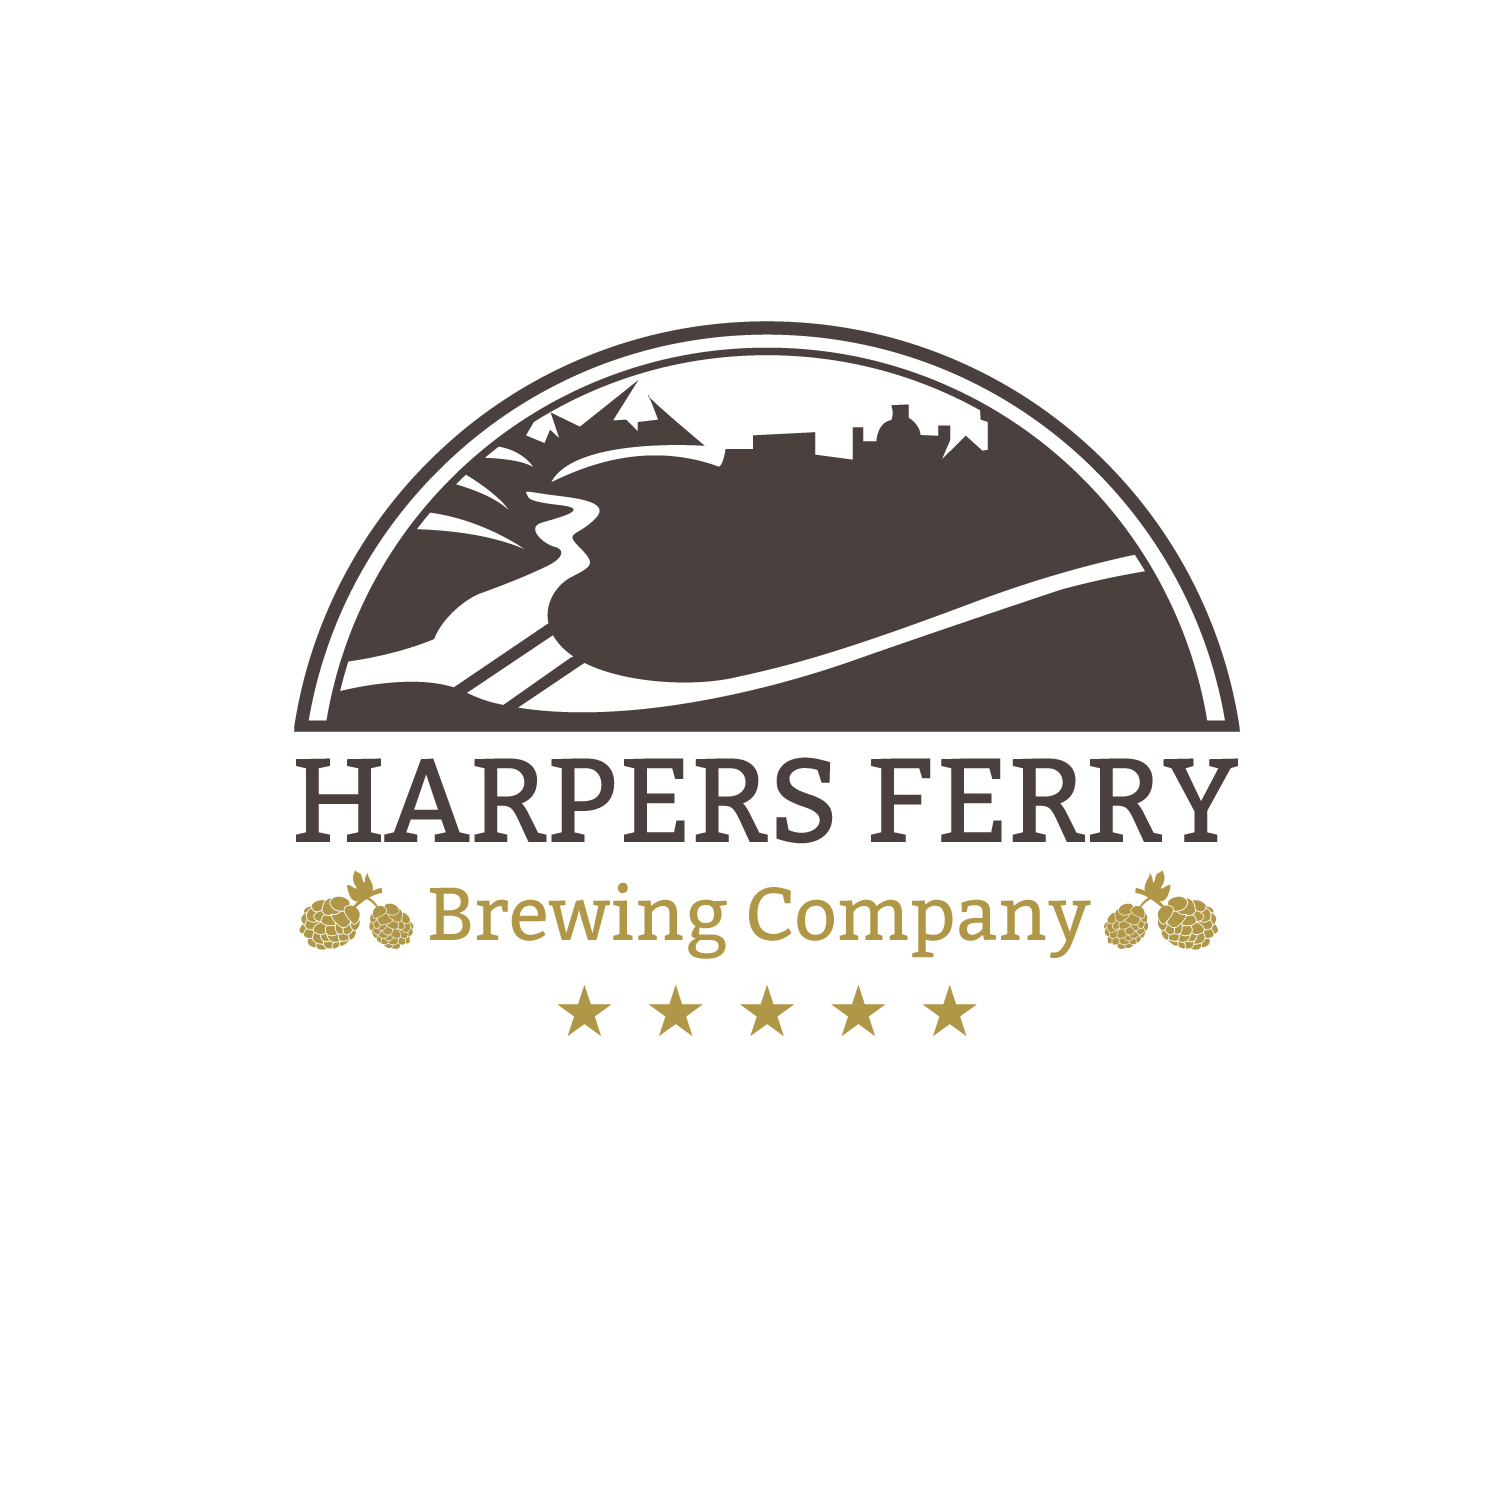 Logo Design by Bac Huu - Entry No. 38 in the Logo Design Contest Unique Logo Design Wanted for Harpers ferry brewing company.